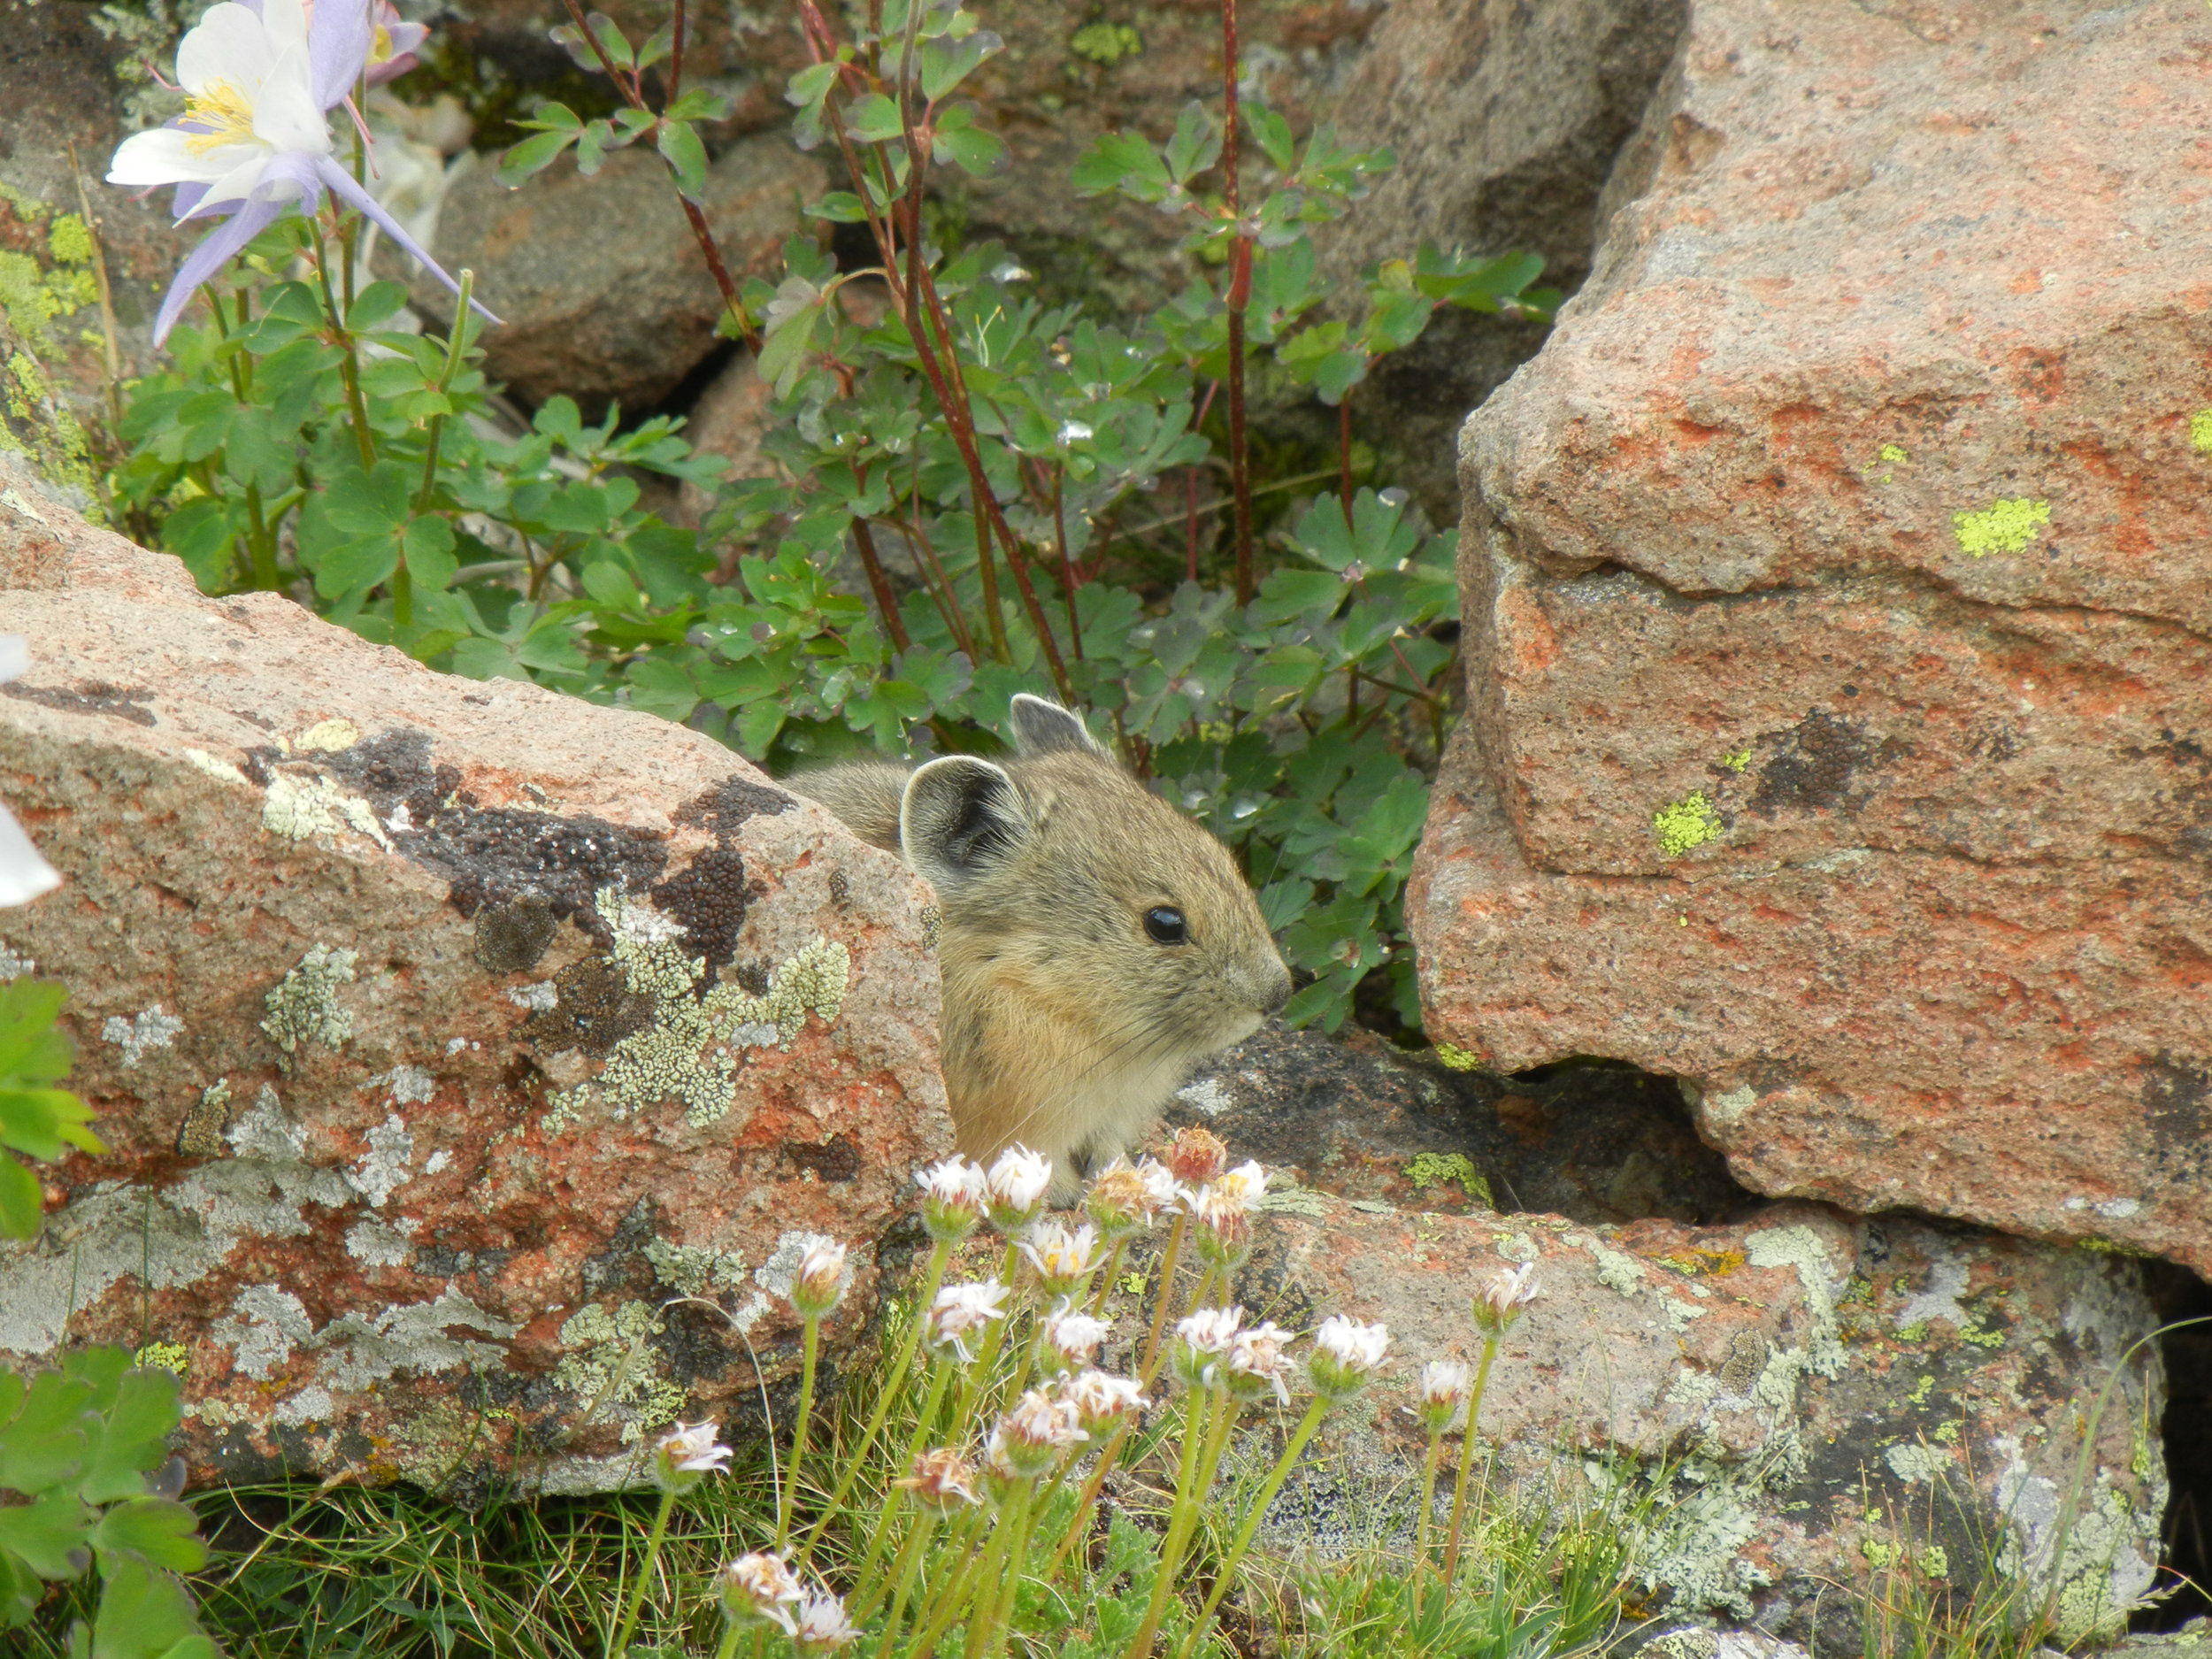 pika image to accompany story.JPG